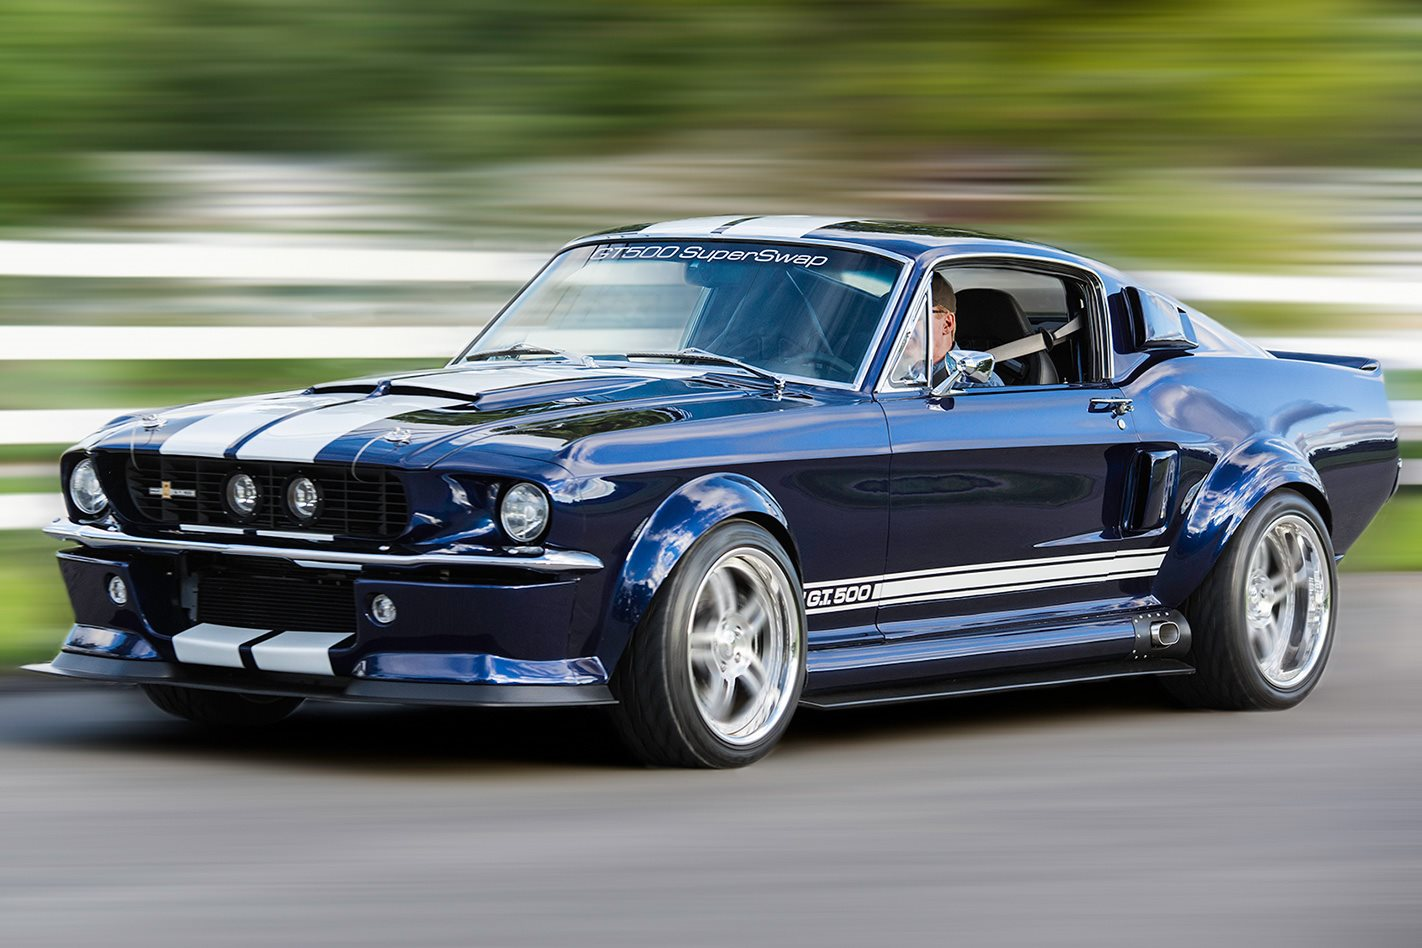 2012 ford shelby gt500 with a 1967 shelby gt500 body